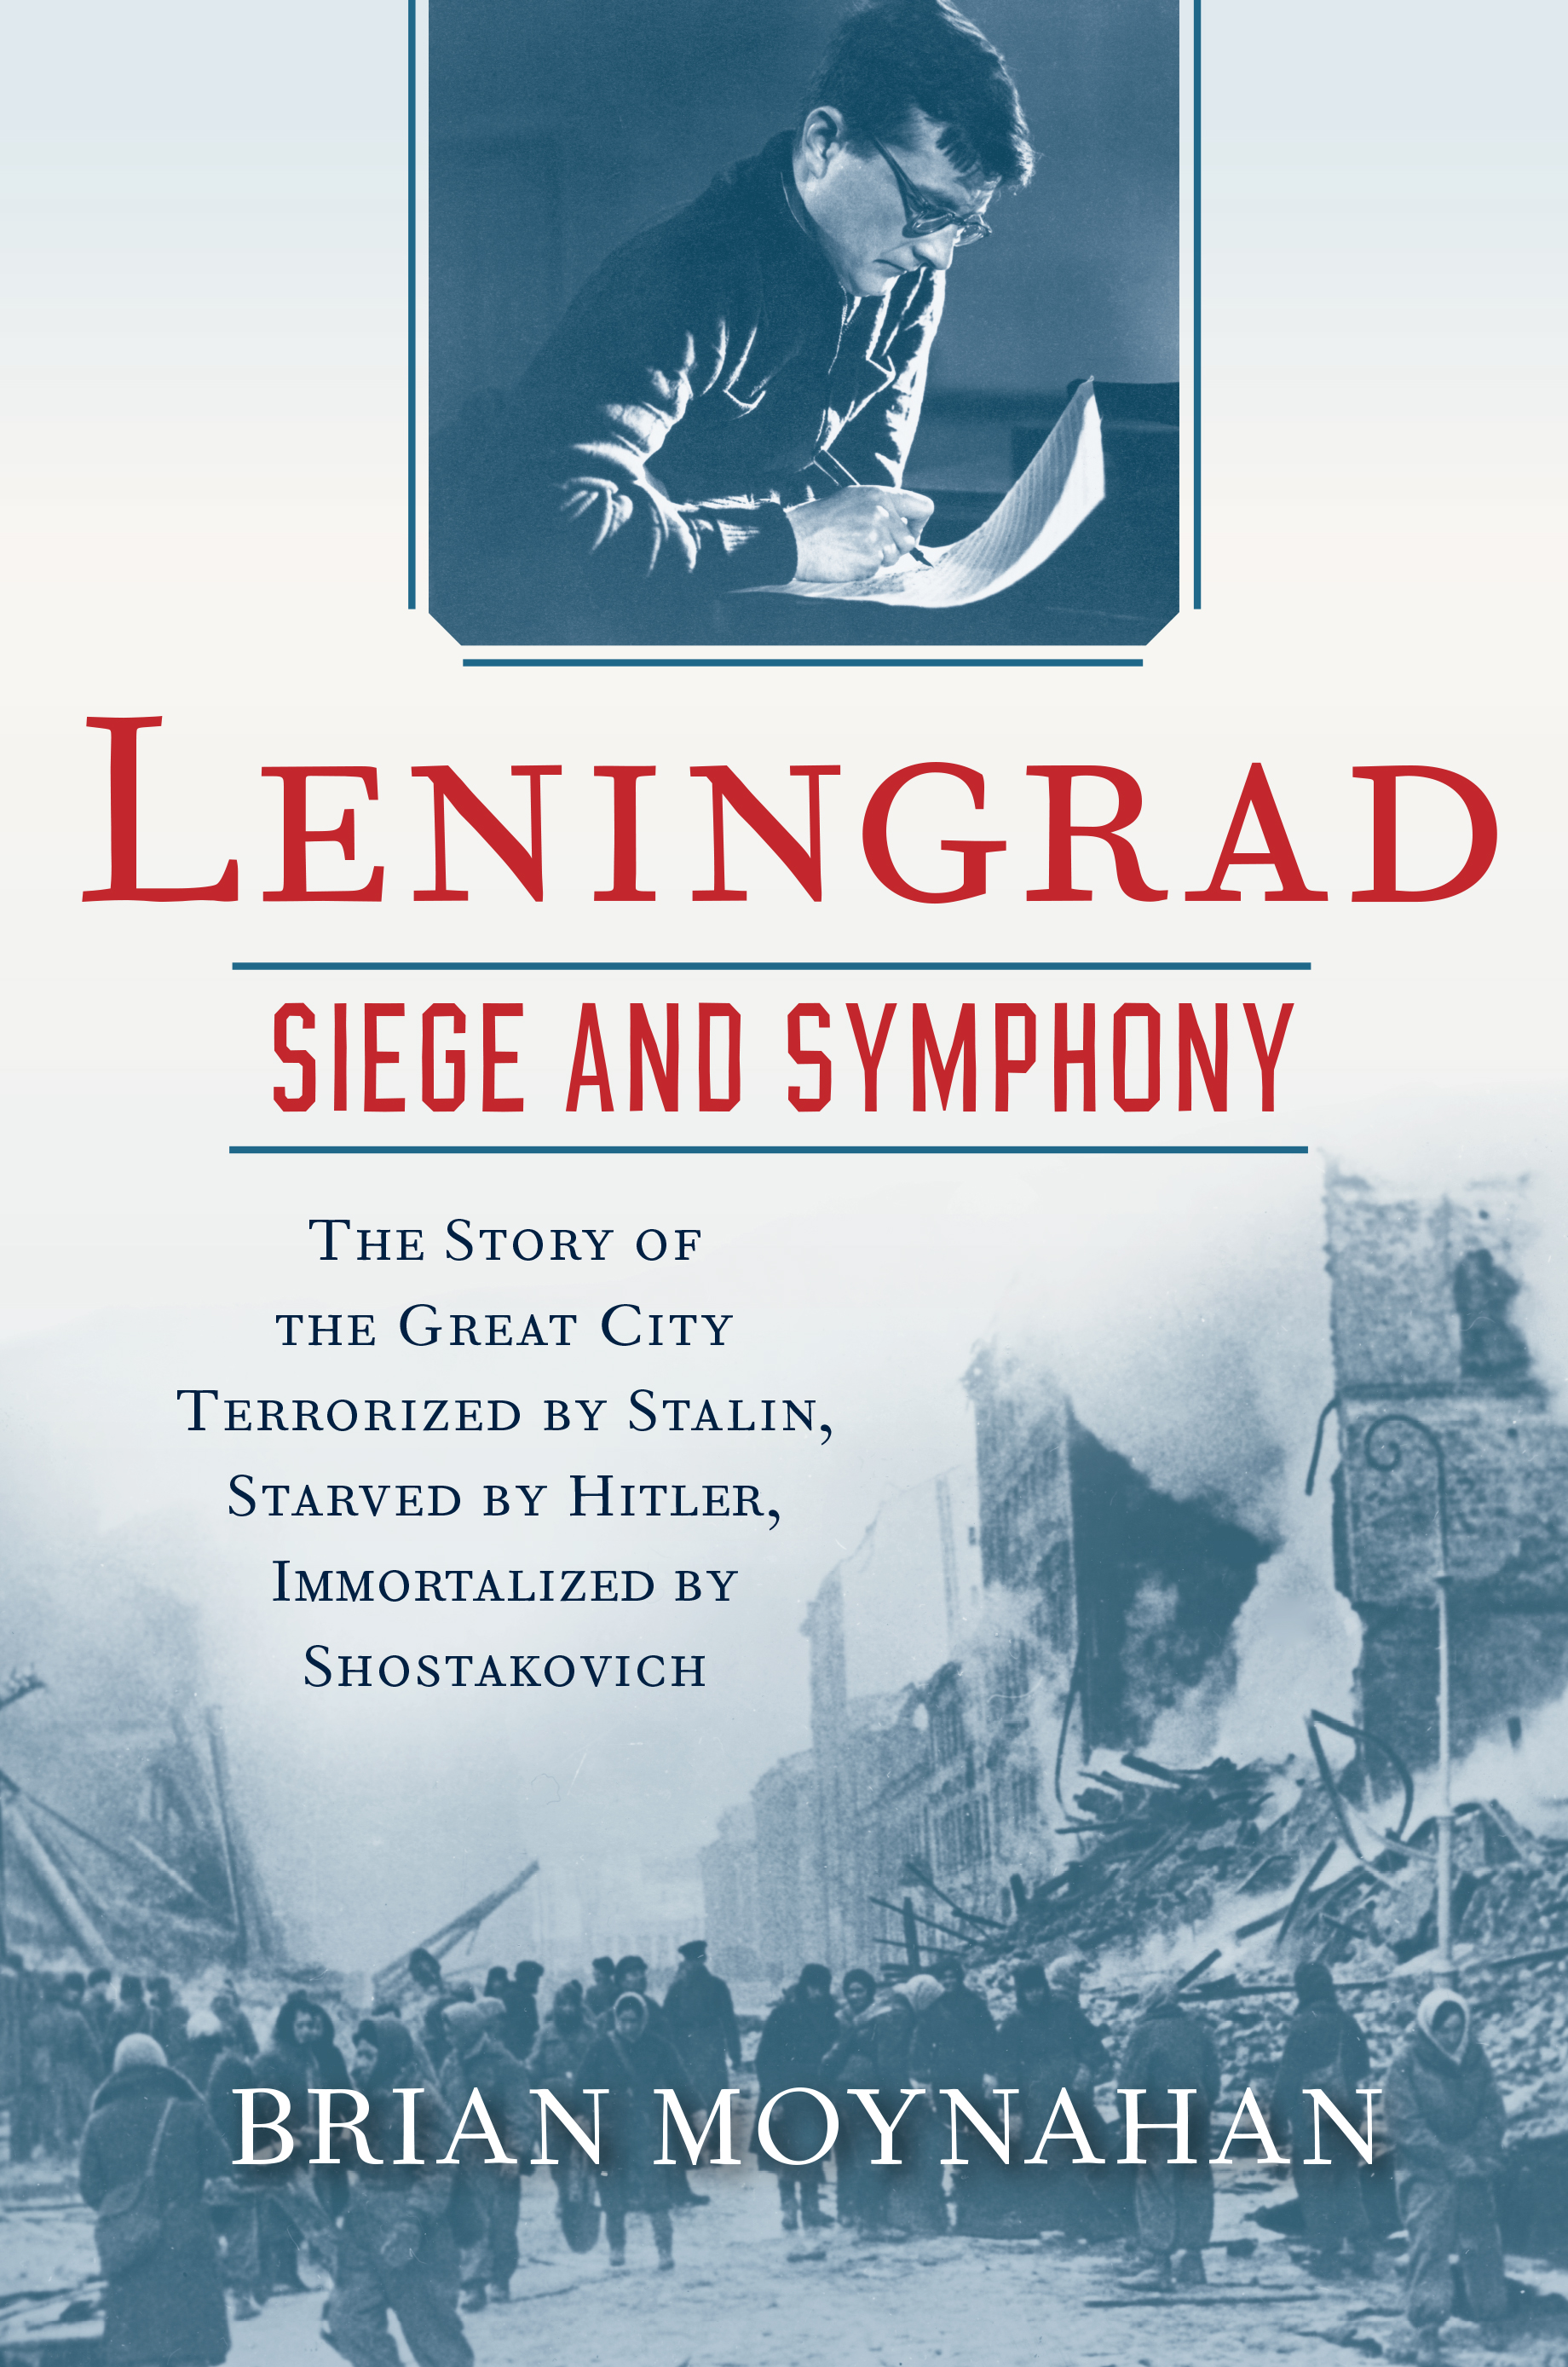 ... Leningrad: Siege and Symphony. Share This. zoom · download